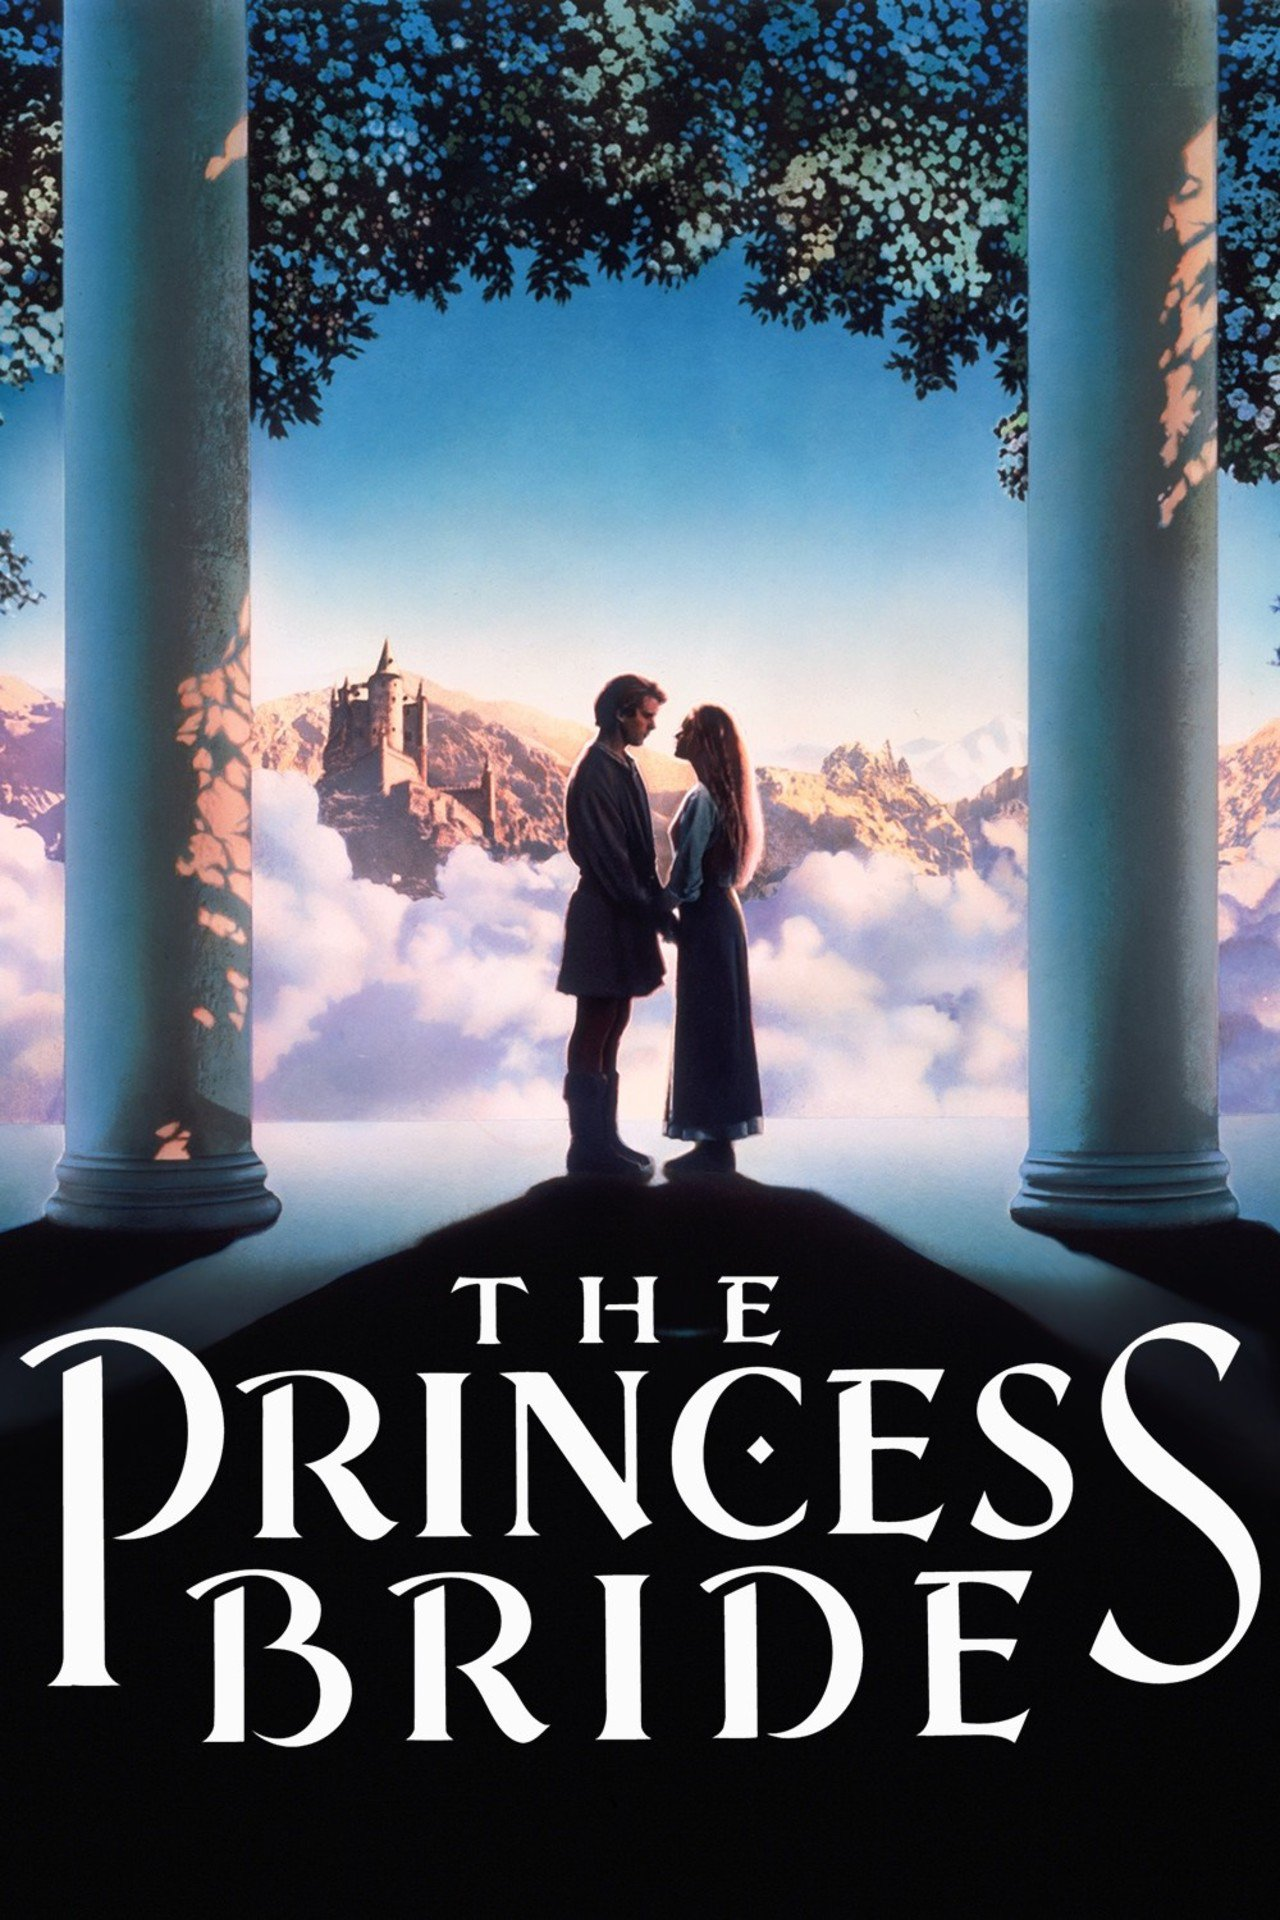 """Poster for <span class=""""title-with-link"""">The Princess Bride (30th Anniversary)</span> <a href=""""https://nitehawkcinema.com/williamsburg/movies/the-princess-bride-2/"""">See All Screenings</a>"""